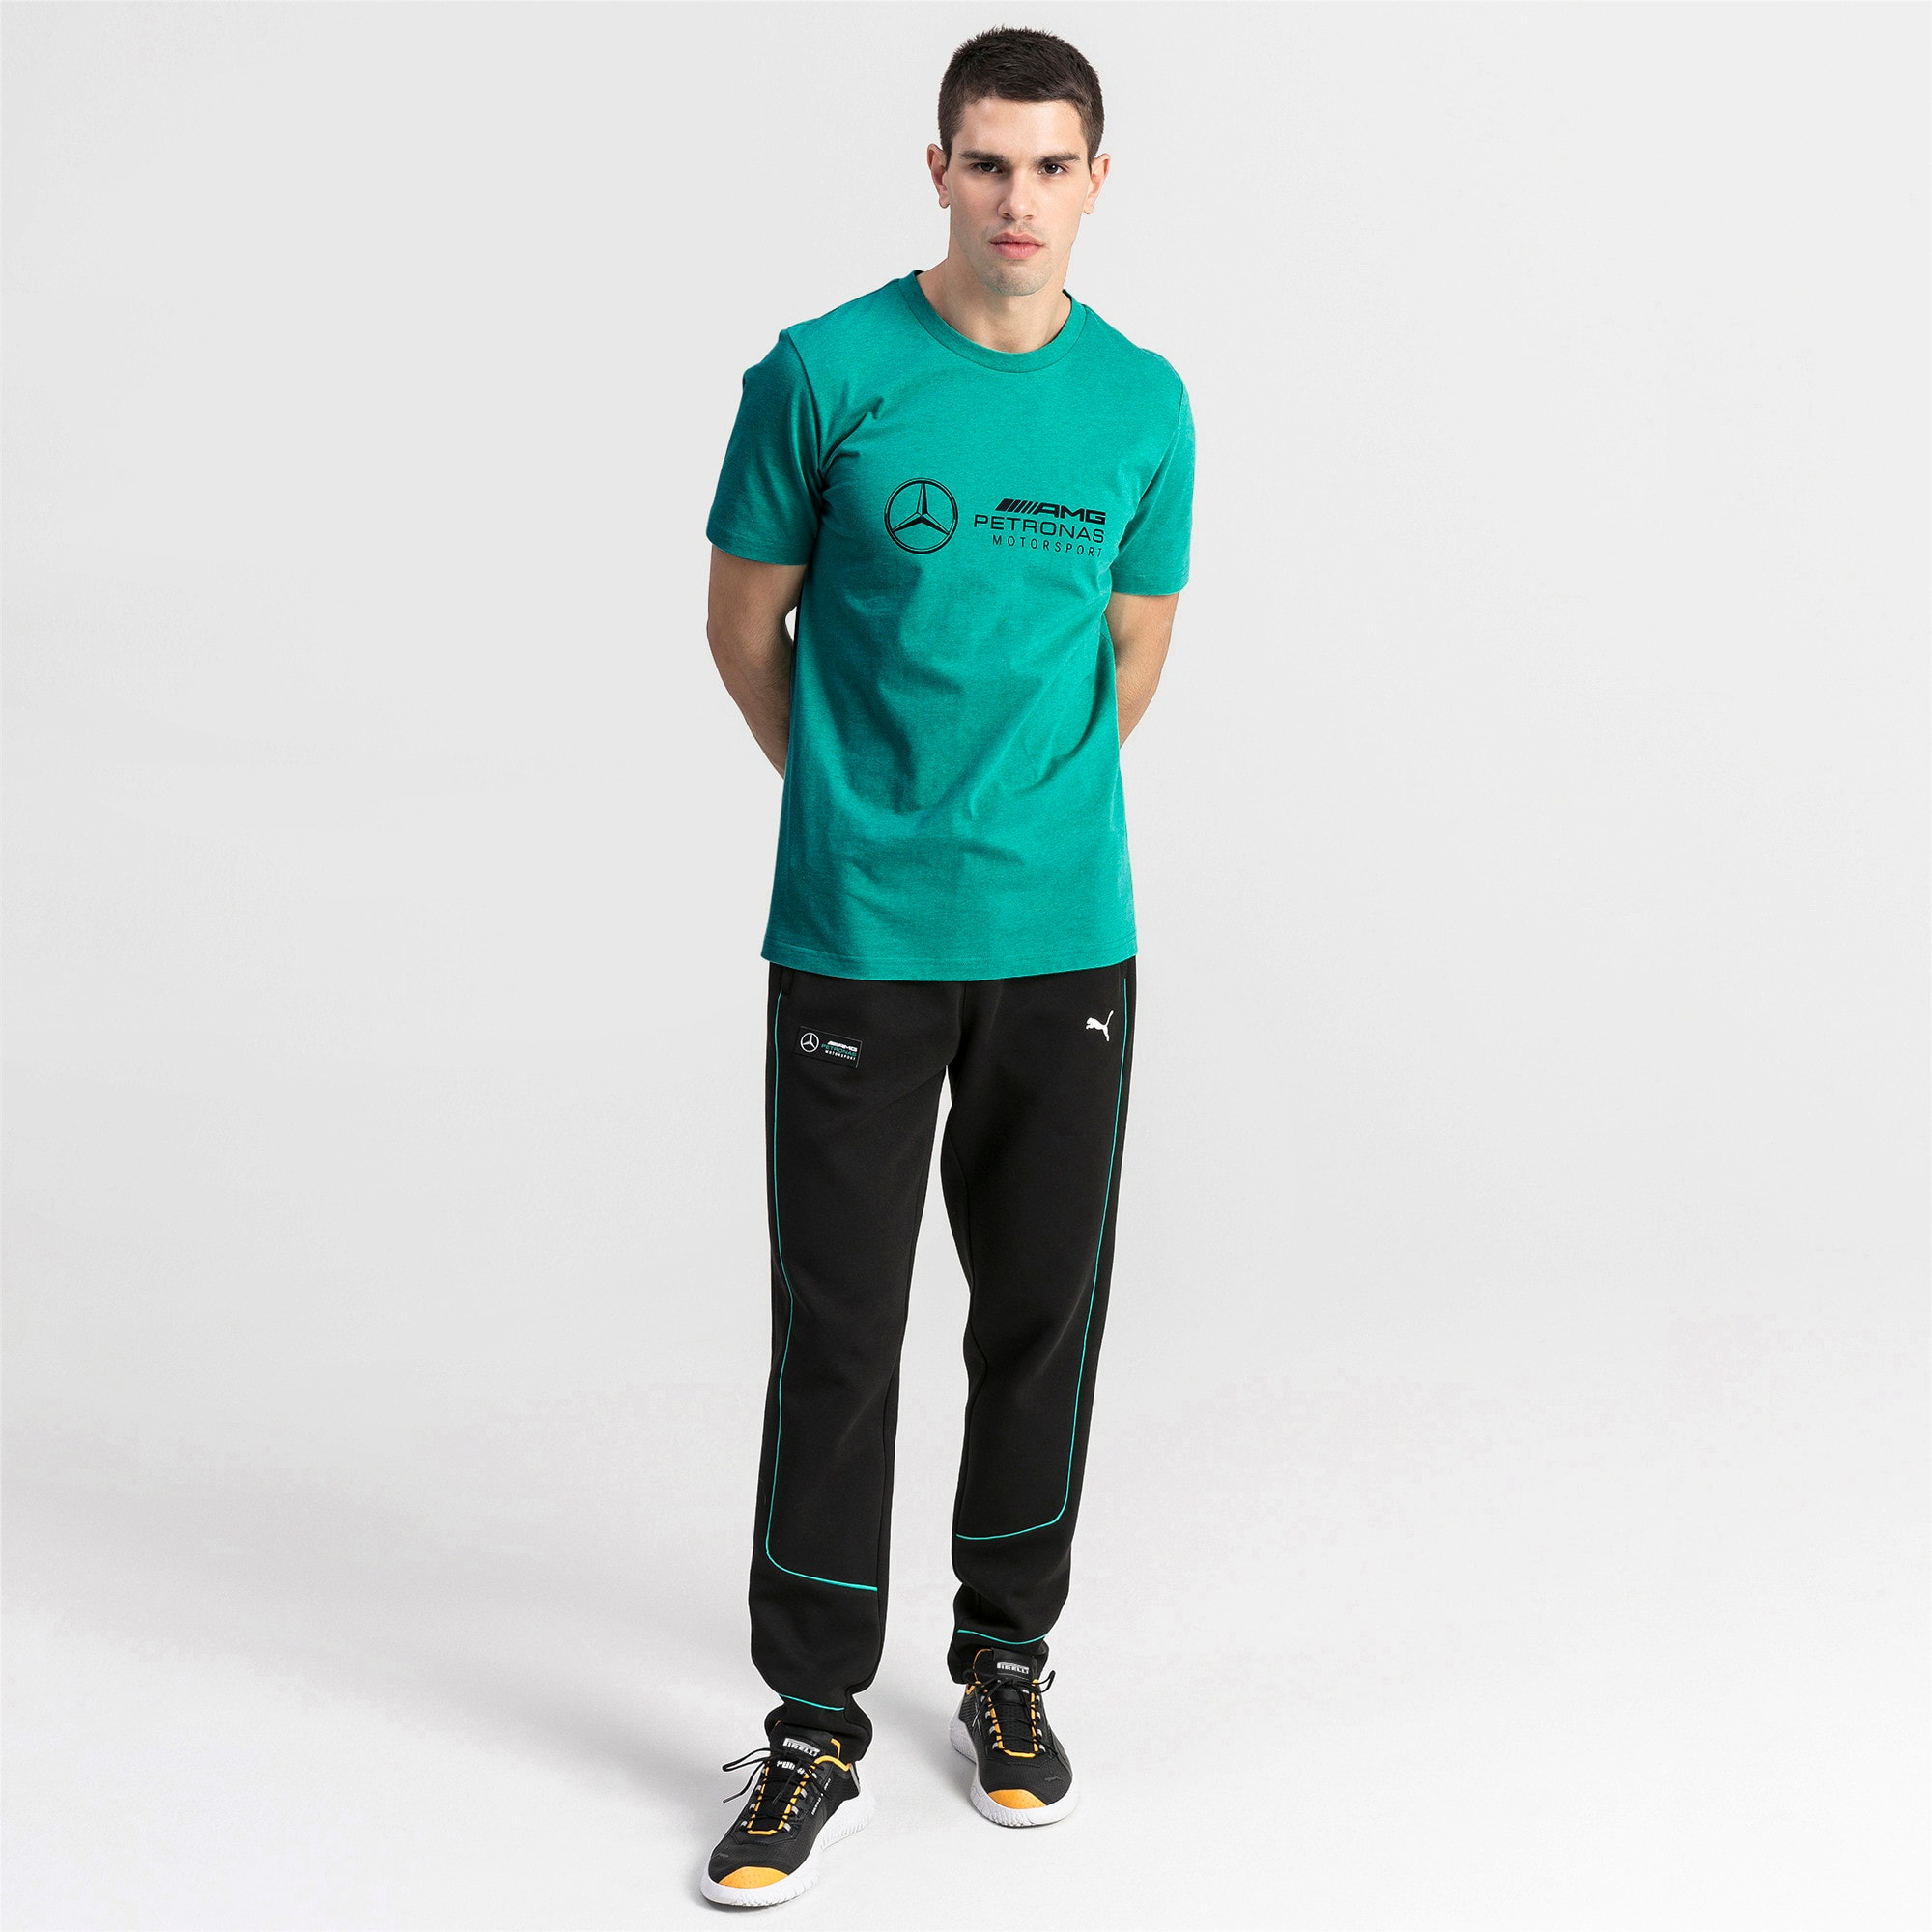 Mercedes AMG Petronas Short Sleeve Men's Tee, Spectra Green Heather, large